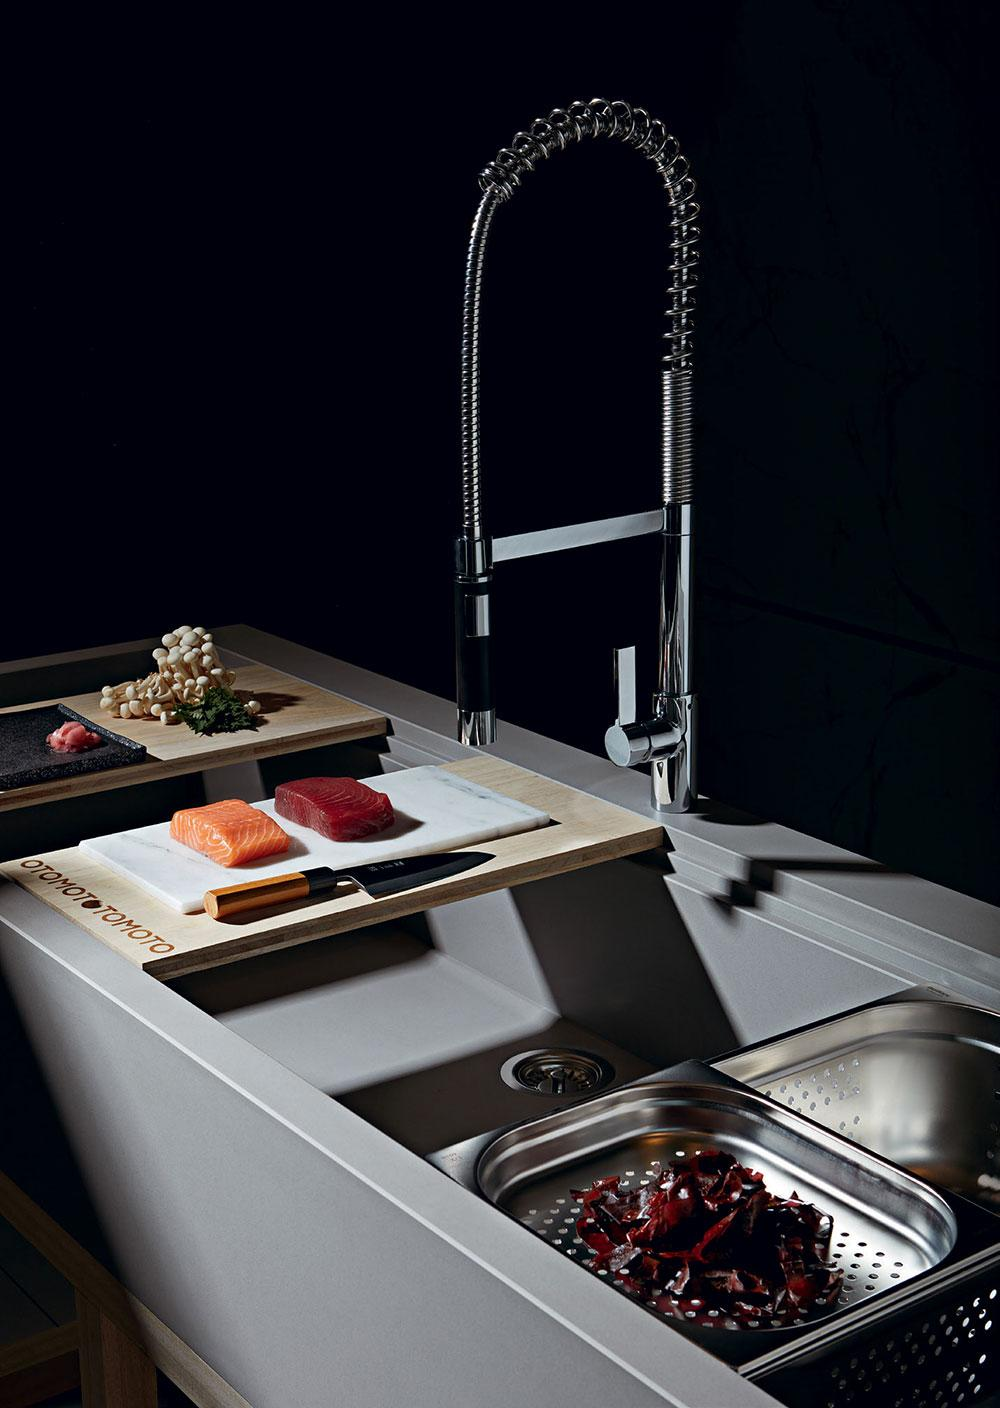 OTOMOTO Kitchen Sink System by Ryan Gander and Tony Chambers